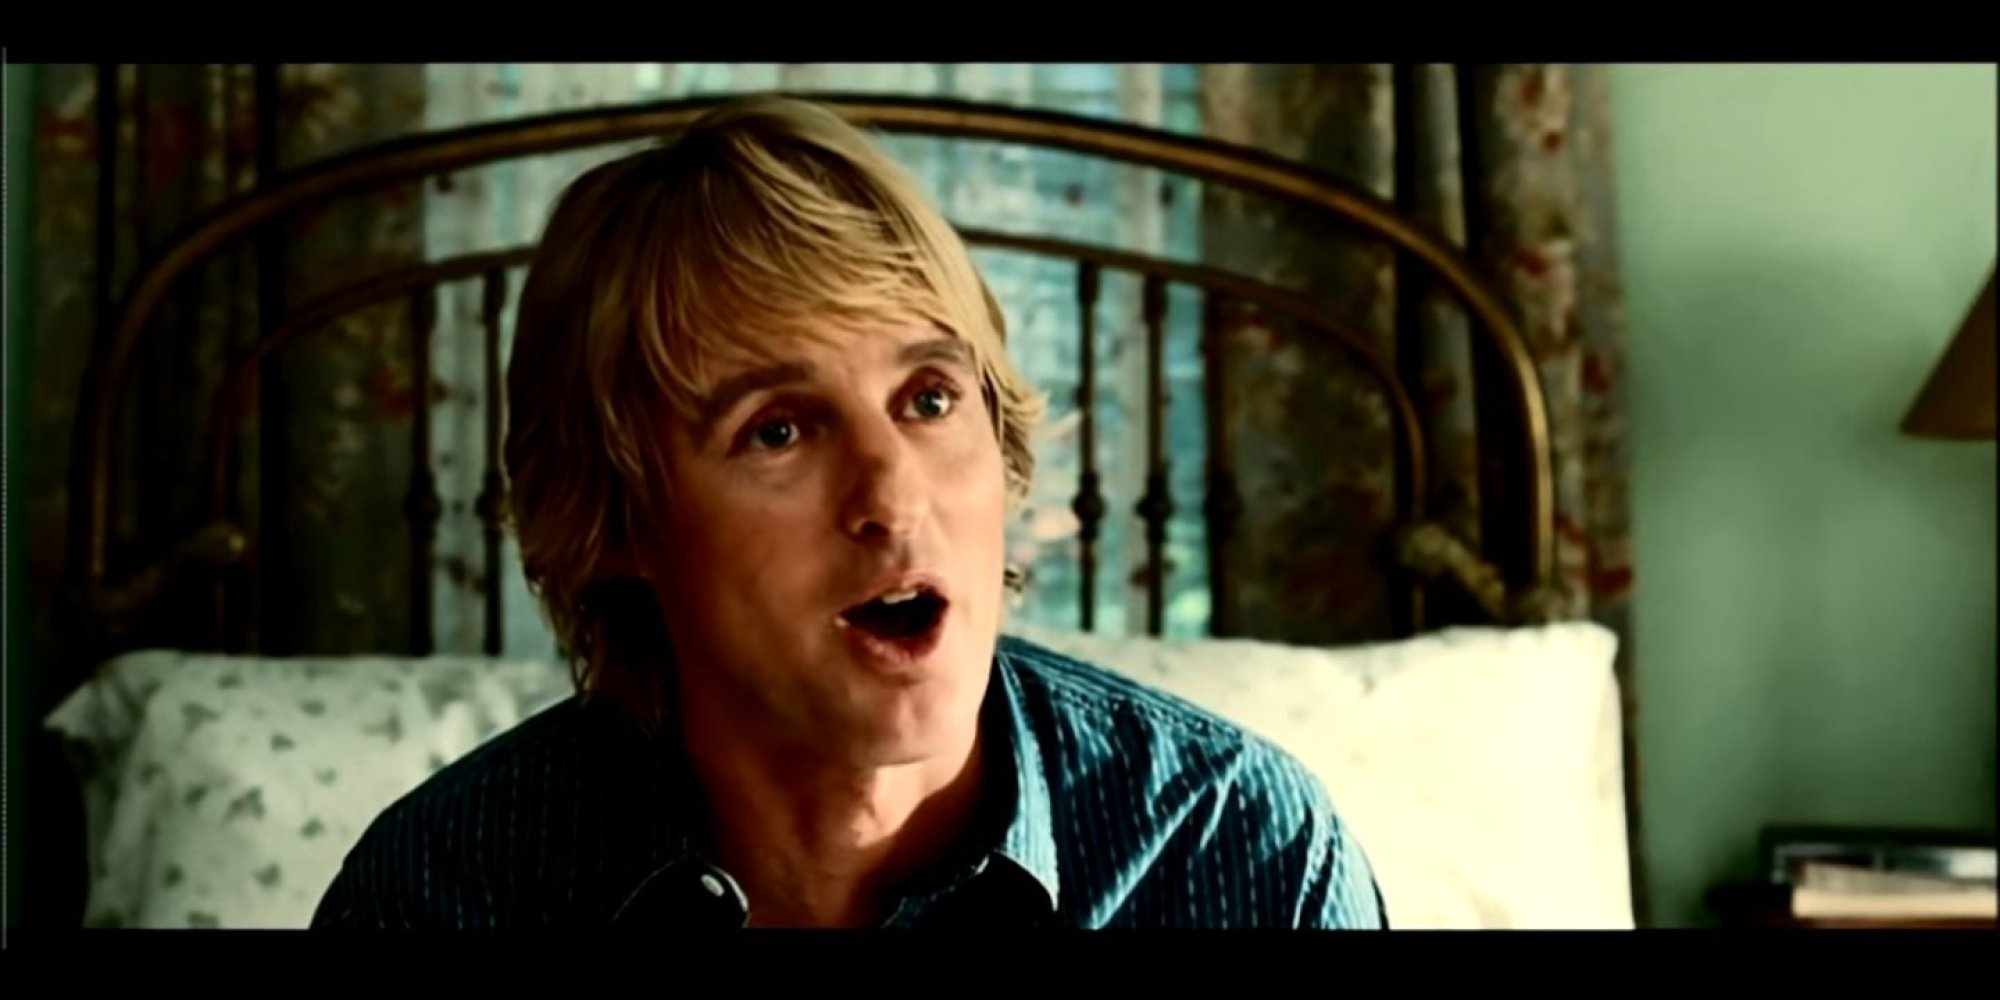 wow owen wilson says wow a lot in his movies huffpost